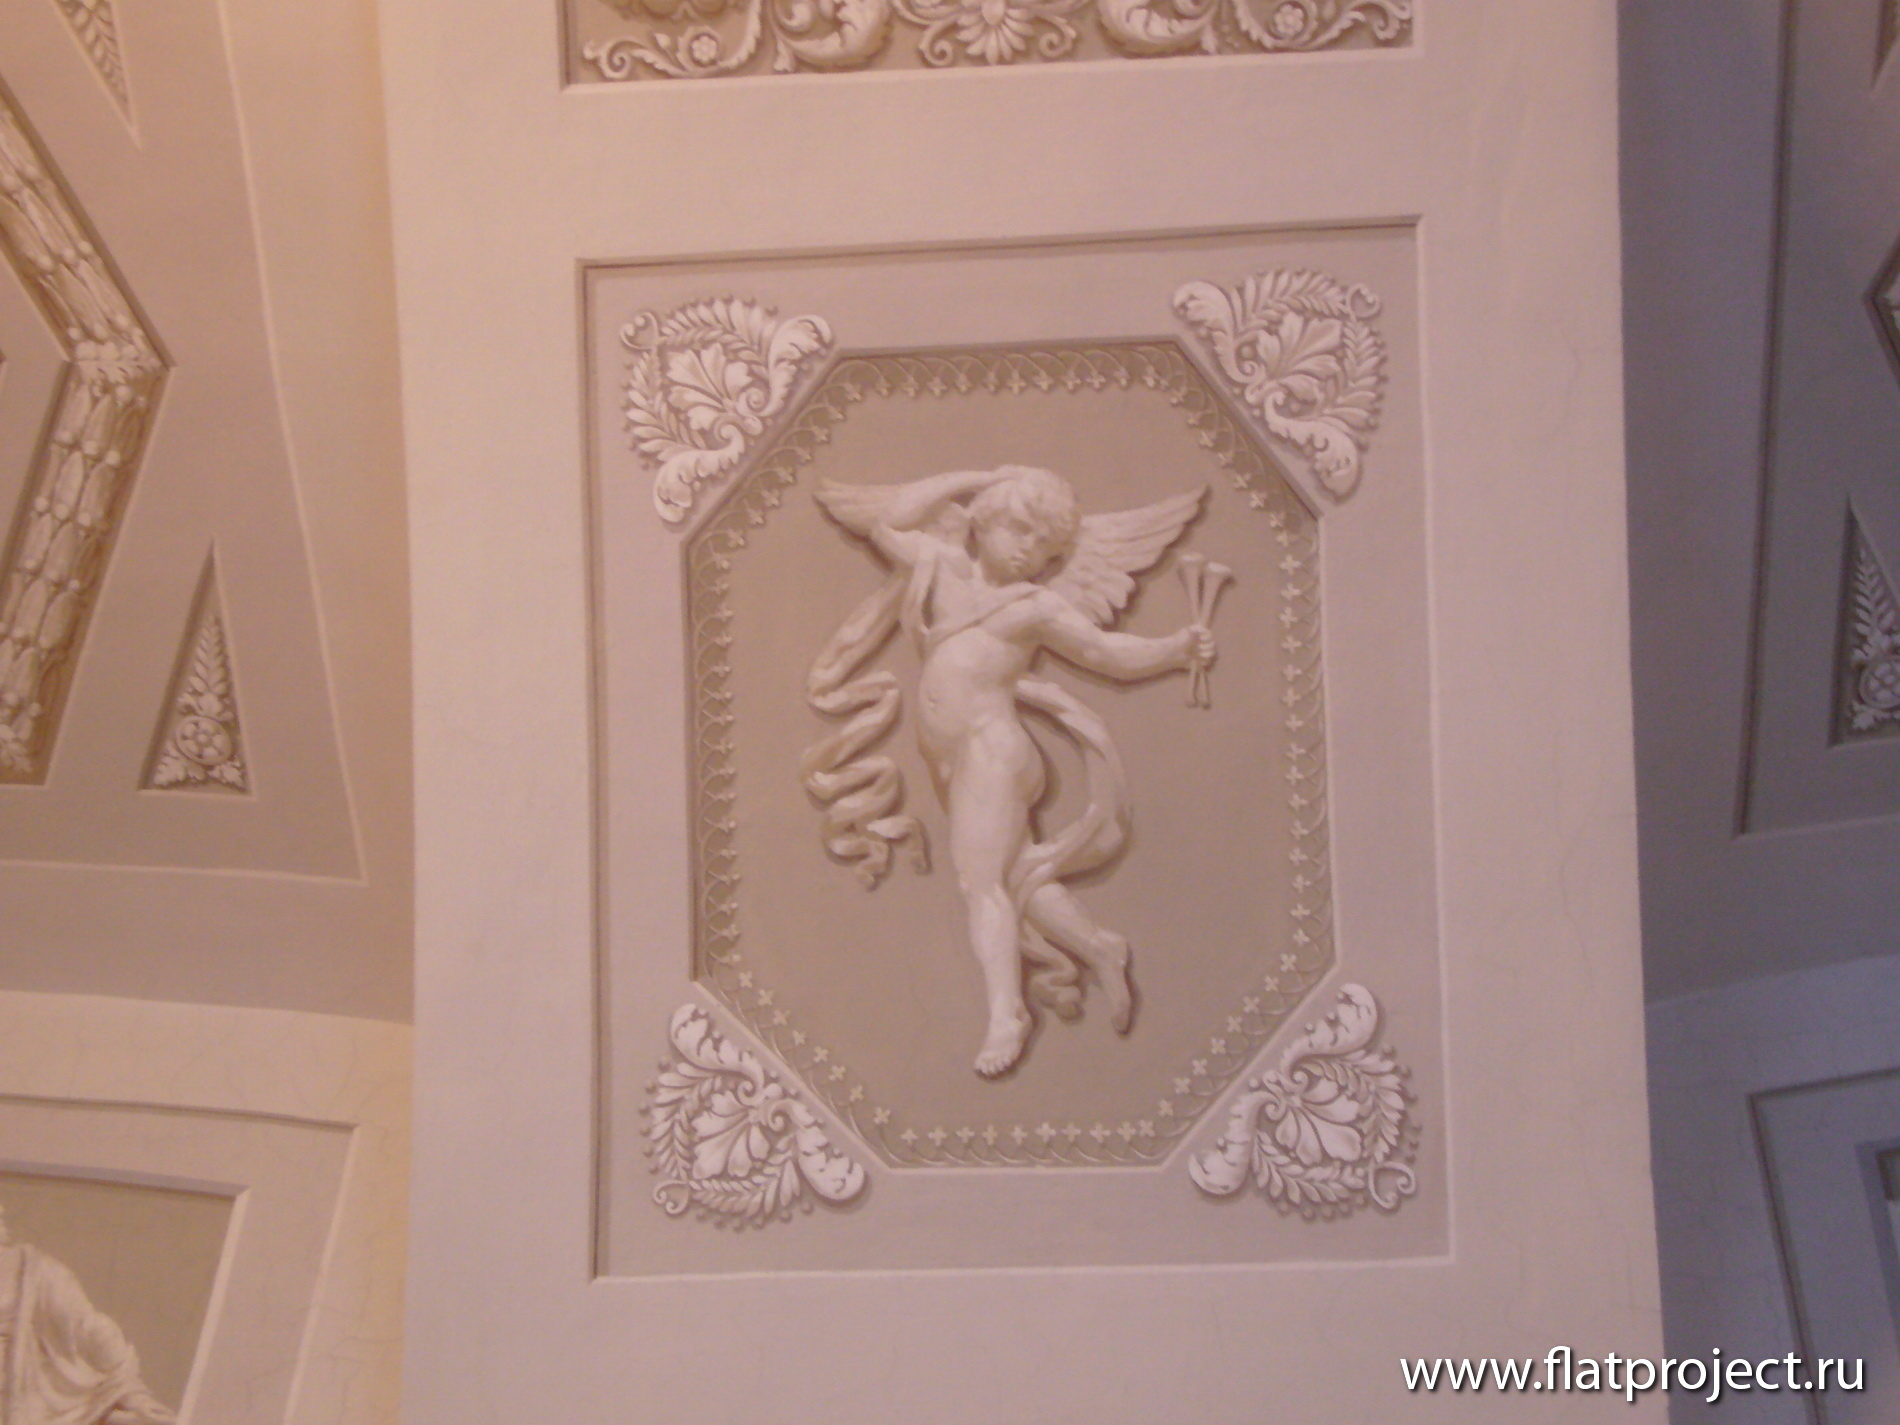 The State Russian museum interiors – photo 137